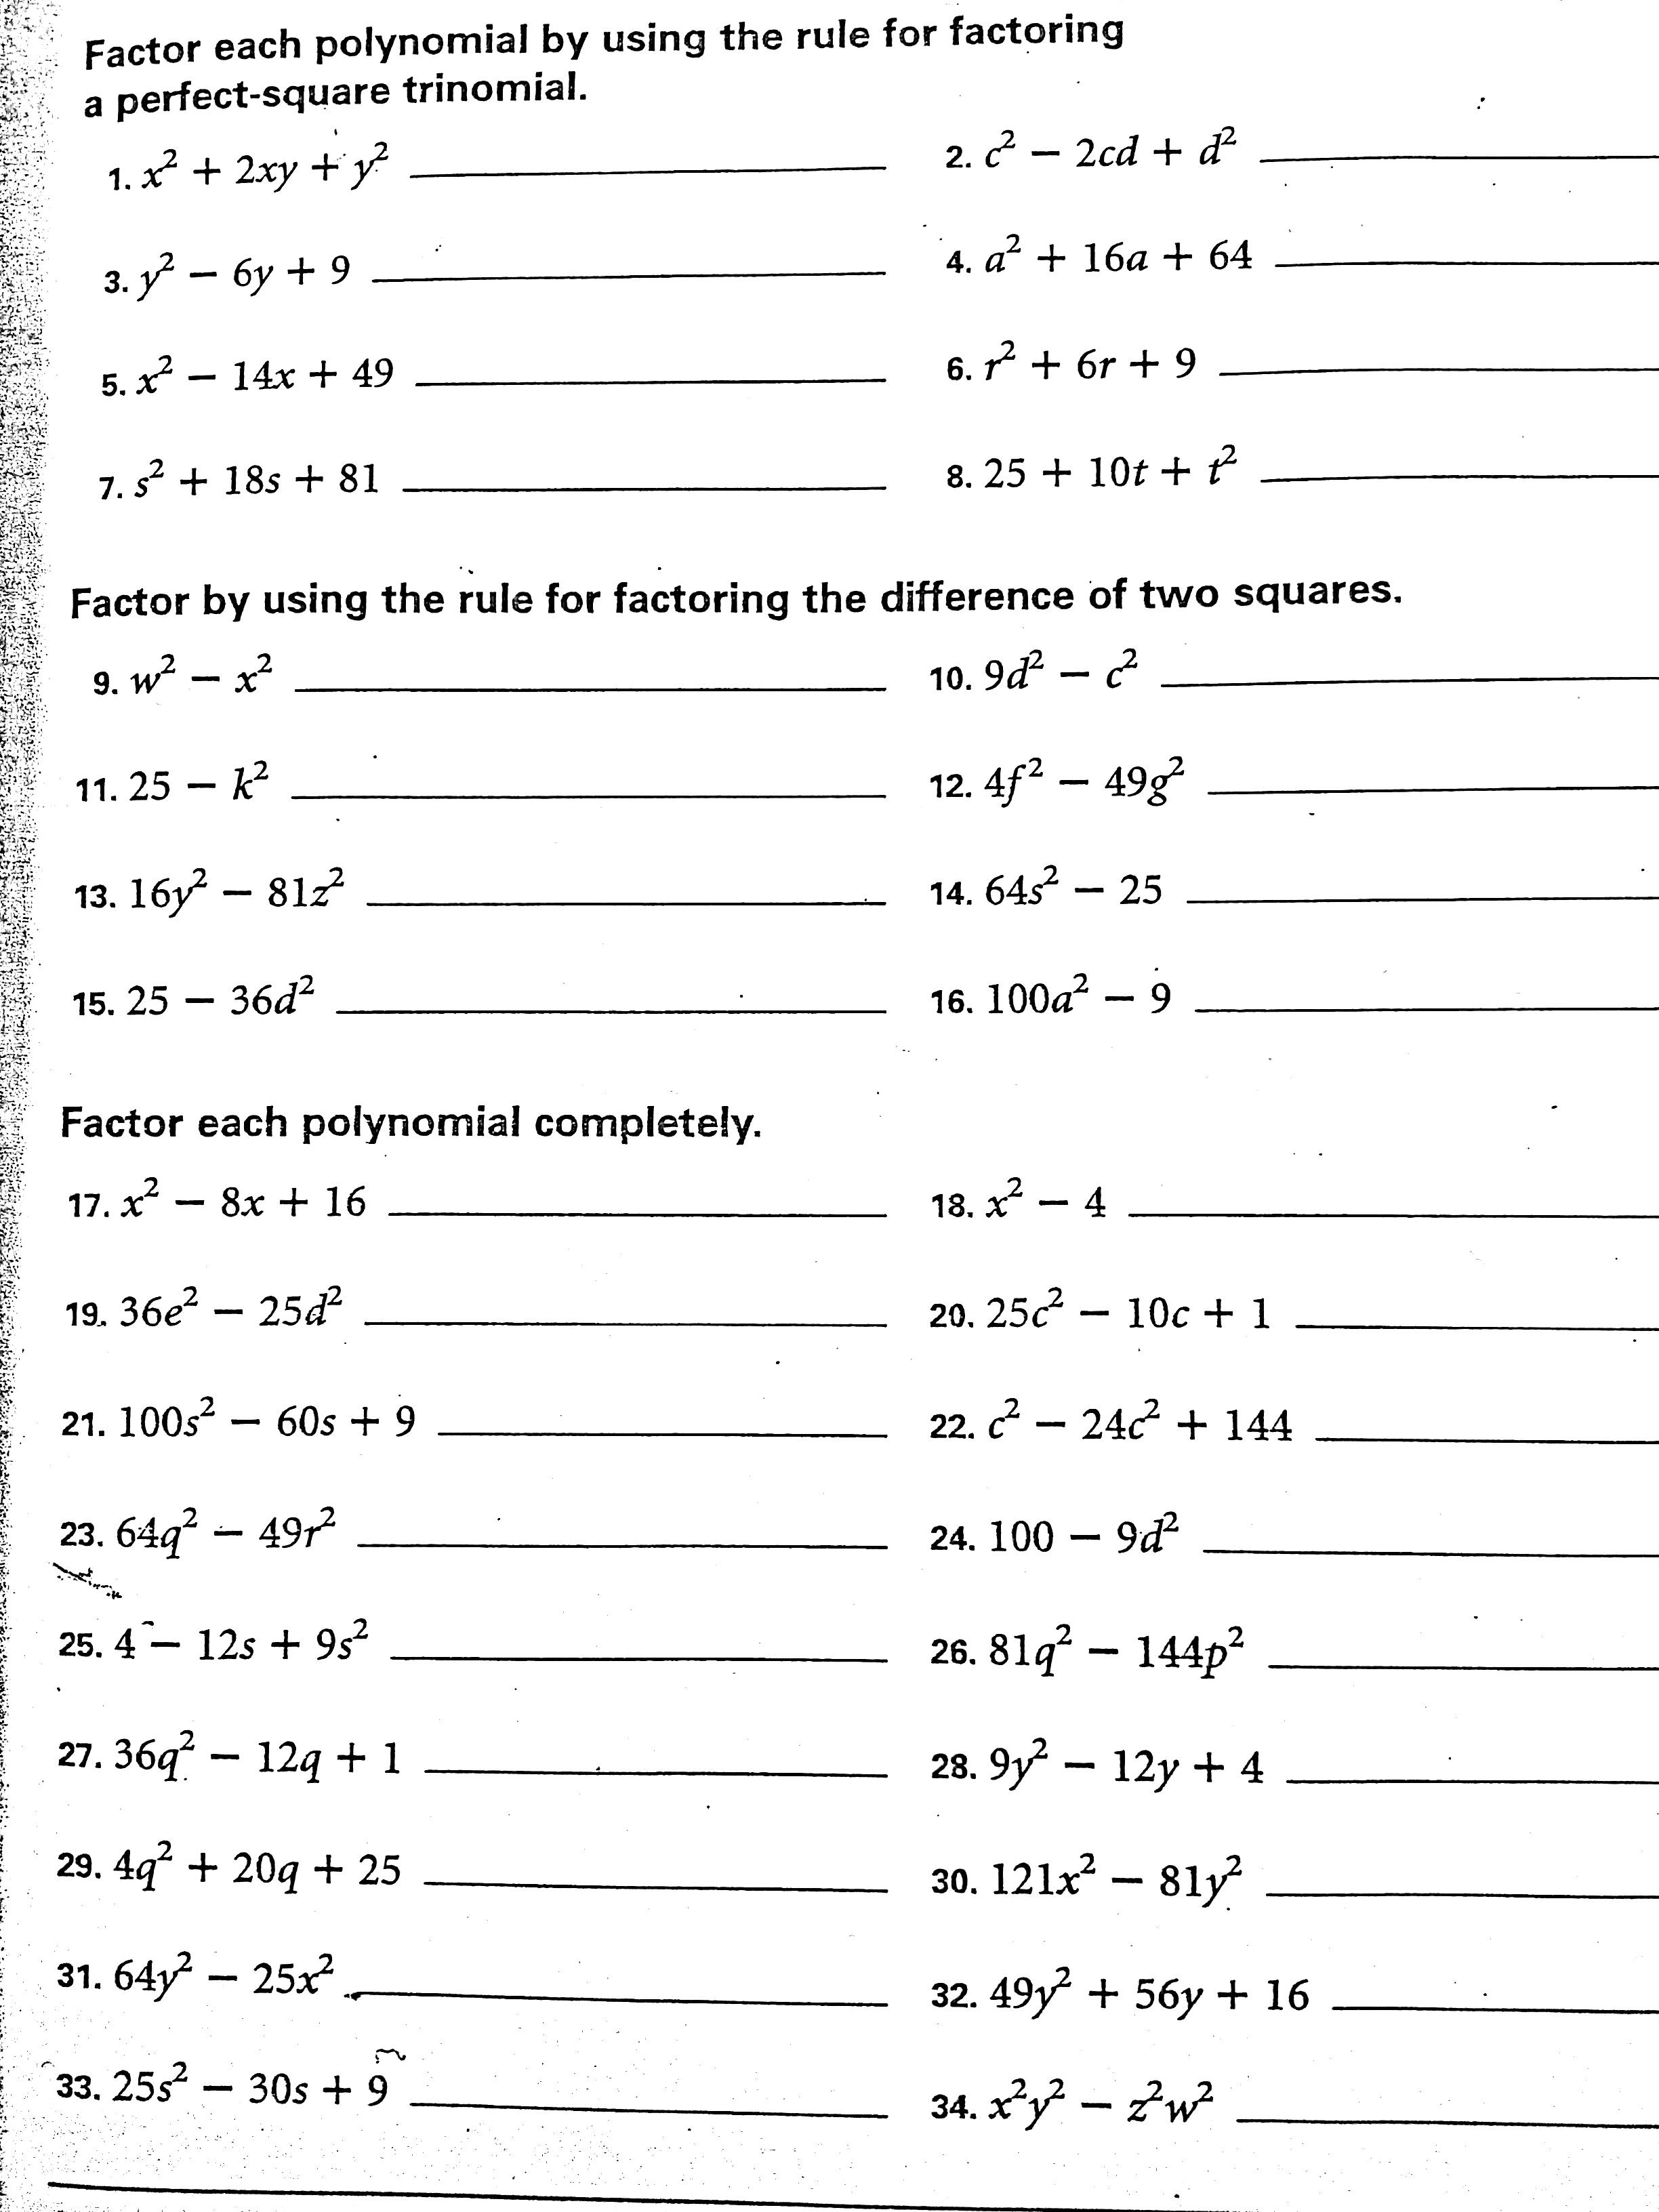 worksheet Perfect Squares Worksheet printables perfect square worksheets gozoneguide thousands of squares worksheet precommunity difference independent practice 2 features another 20 problems